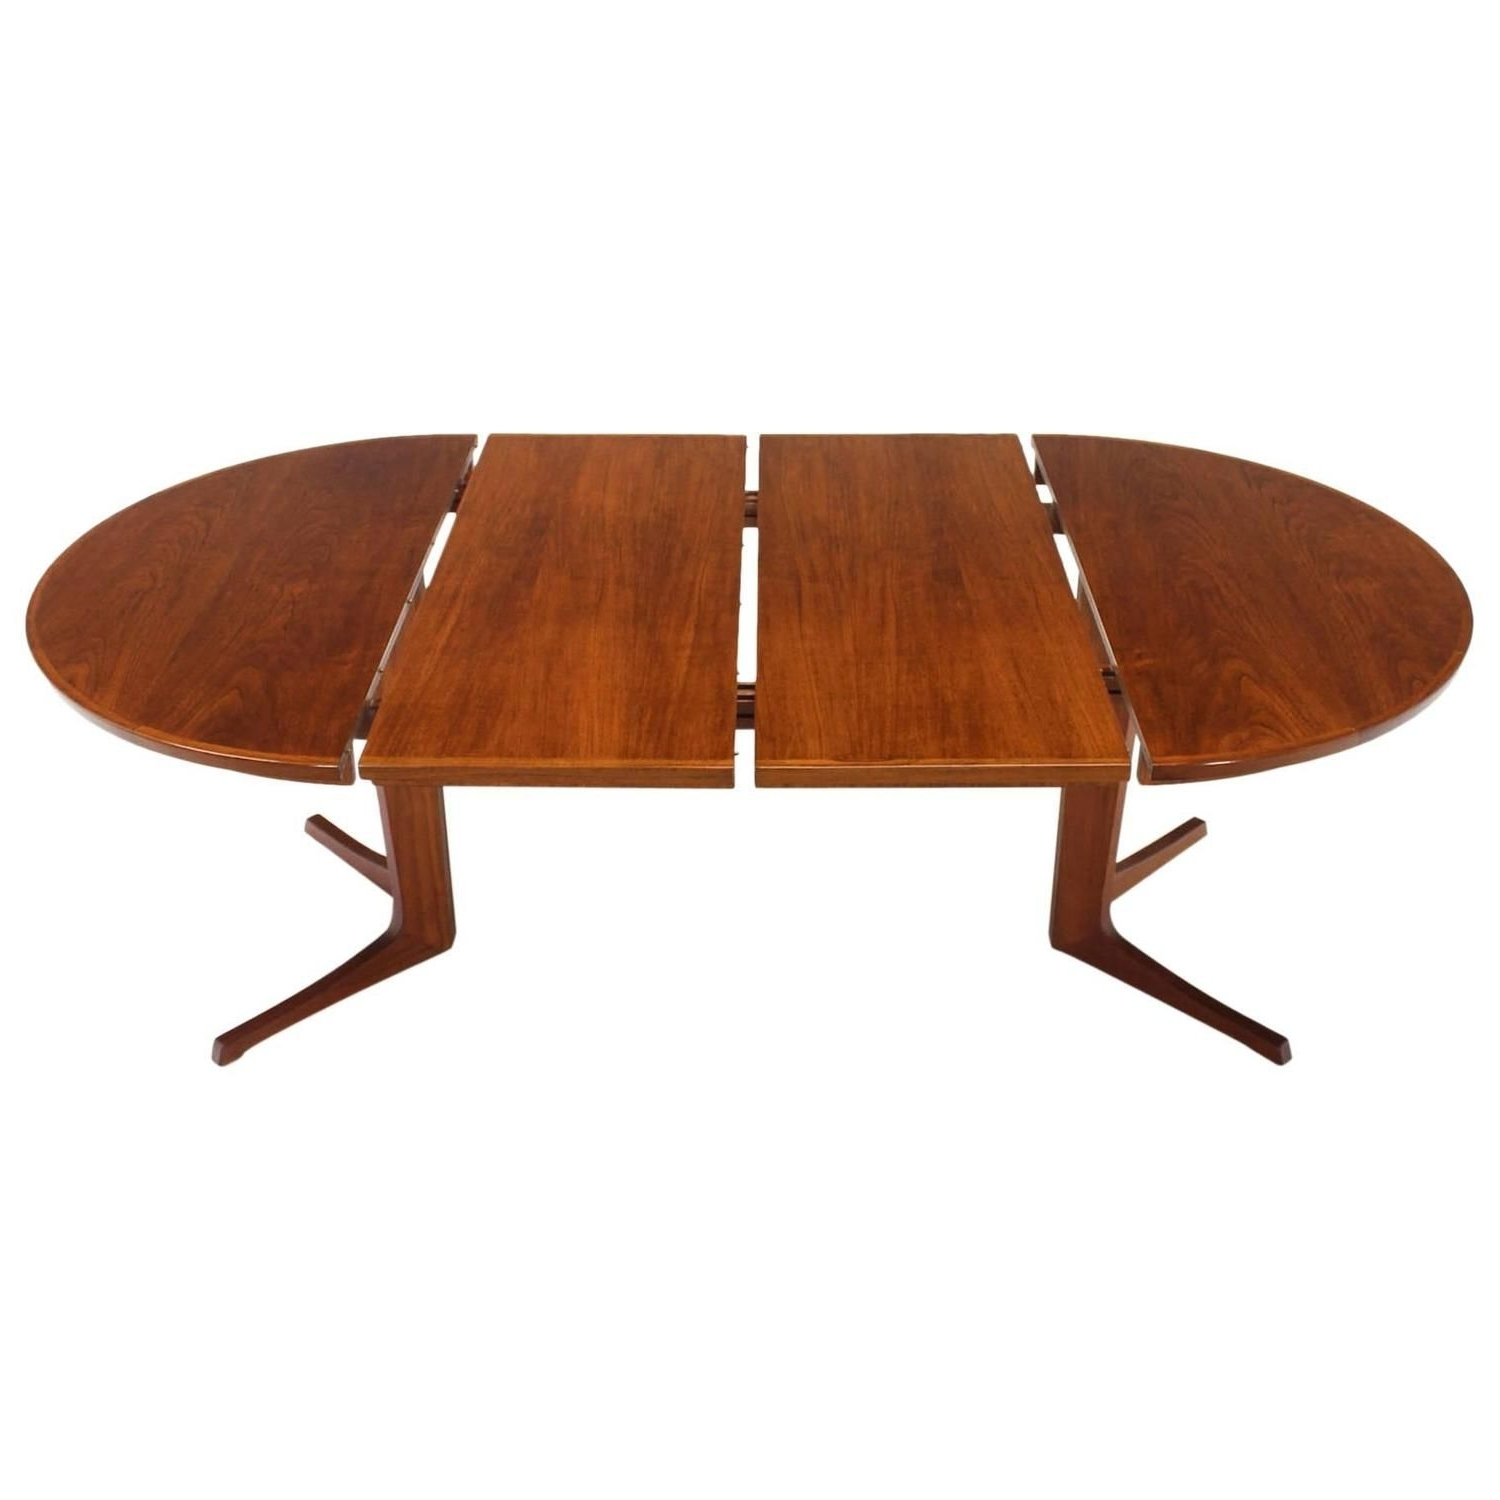 Round Danish Mid Century Modern Teak Dining Table With Two Leaves For Latest Danish Dining Tables (View 7 of 25)